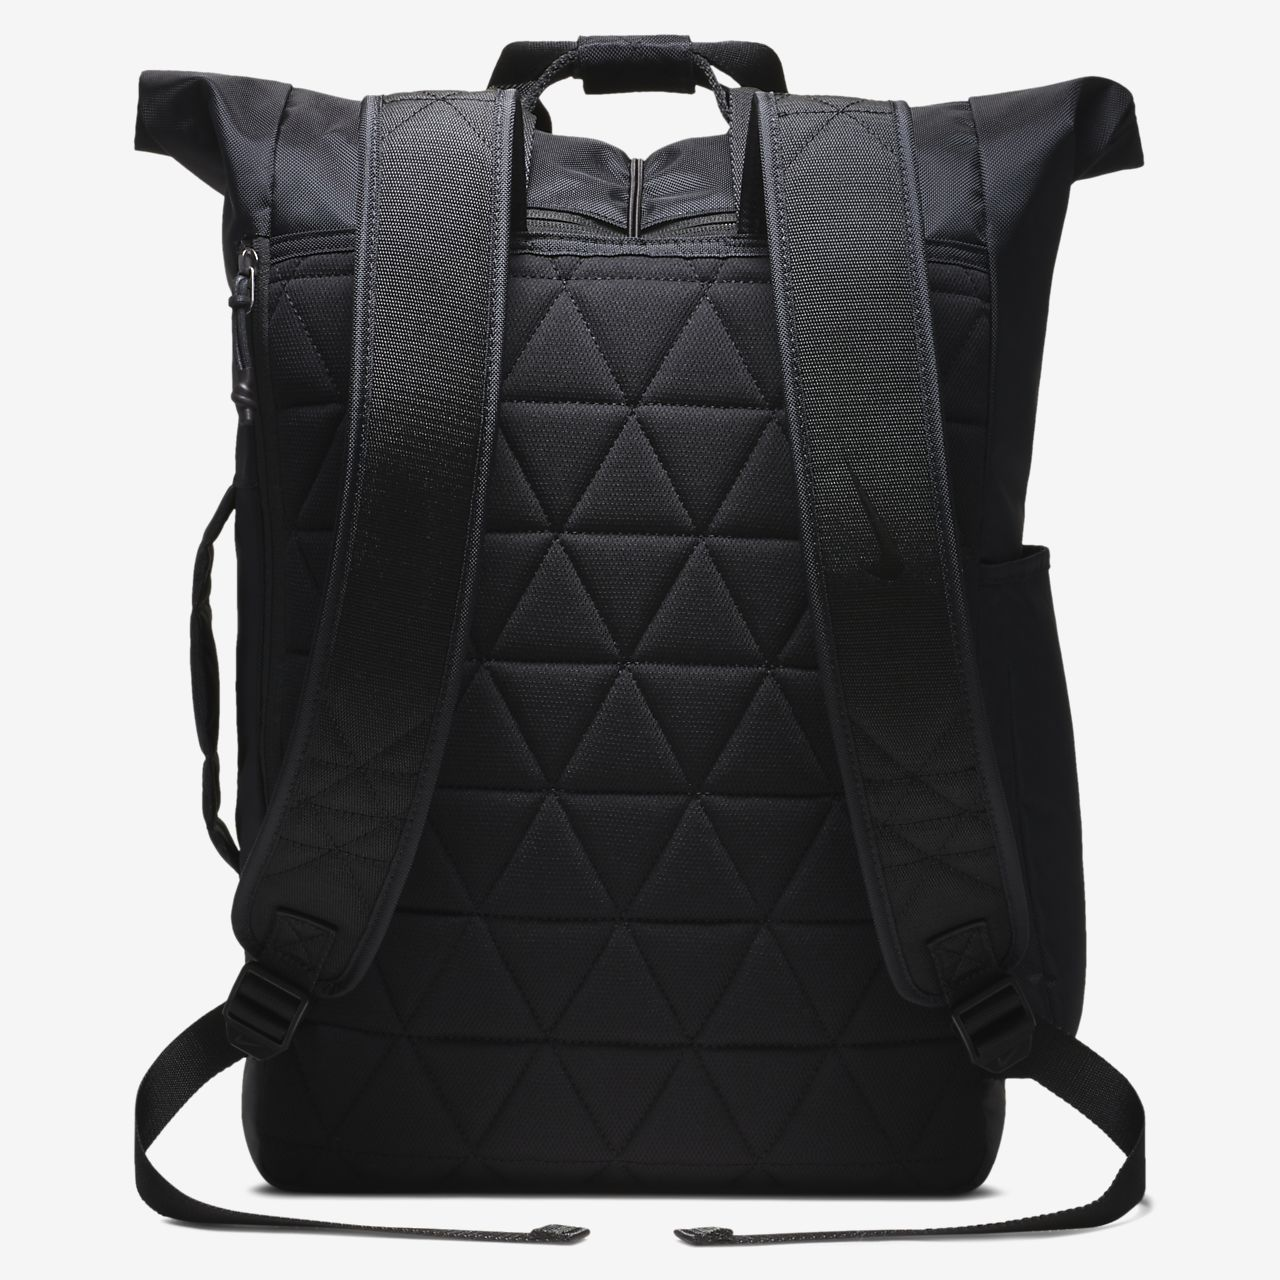 0474d5c8a11e1 Low Resolution Nike Vapor Energy 2.0 Trainingsrucksack Nike Vapor Energy  2.0 Trainingsrucksack